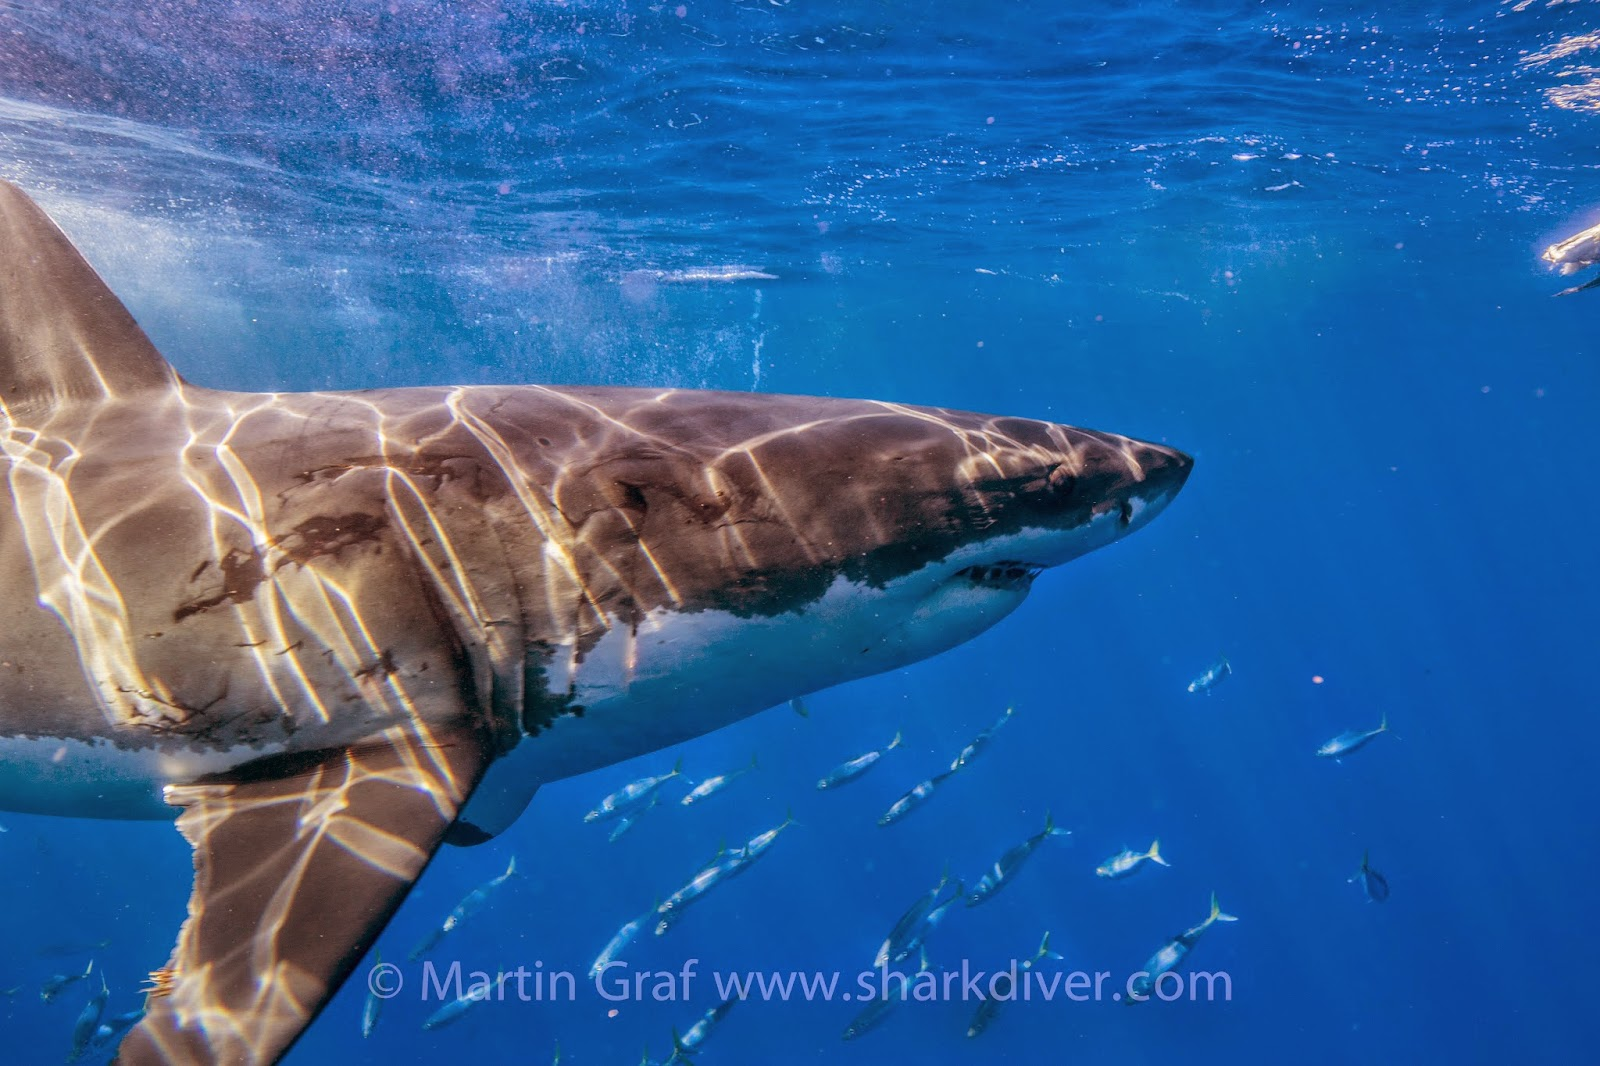 chugey is back at guadalupe shark diver here is what he looks like his old scar and new bite marks